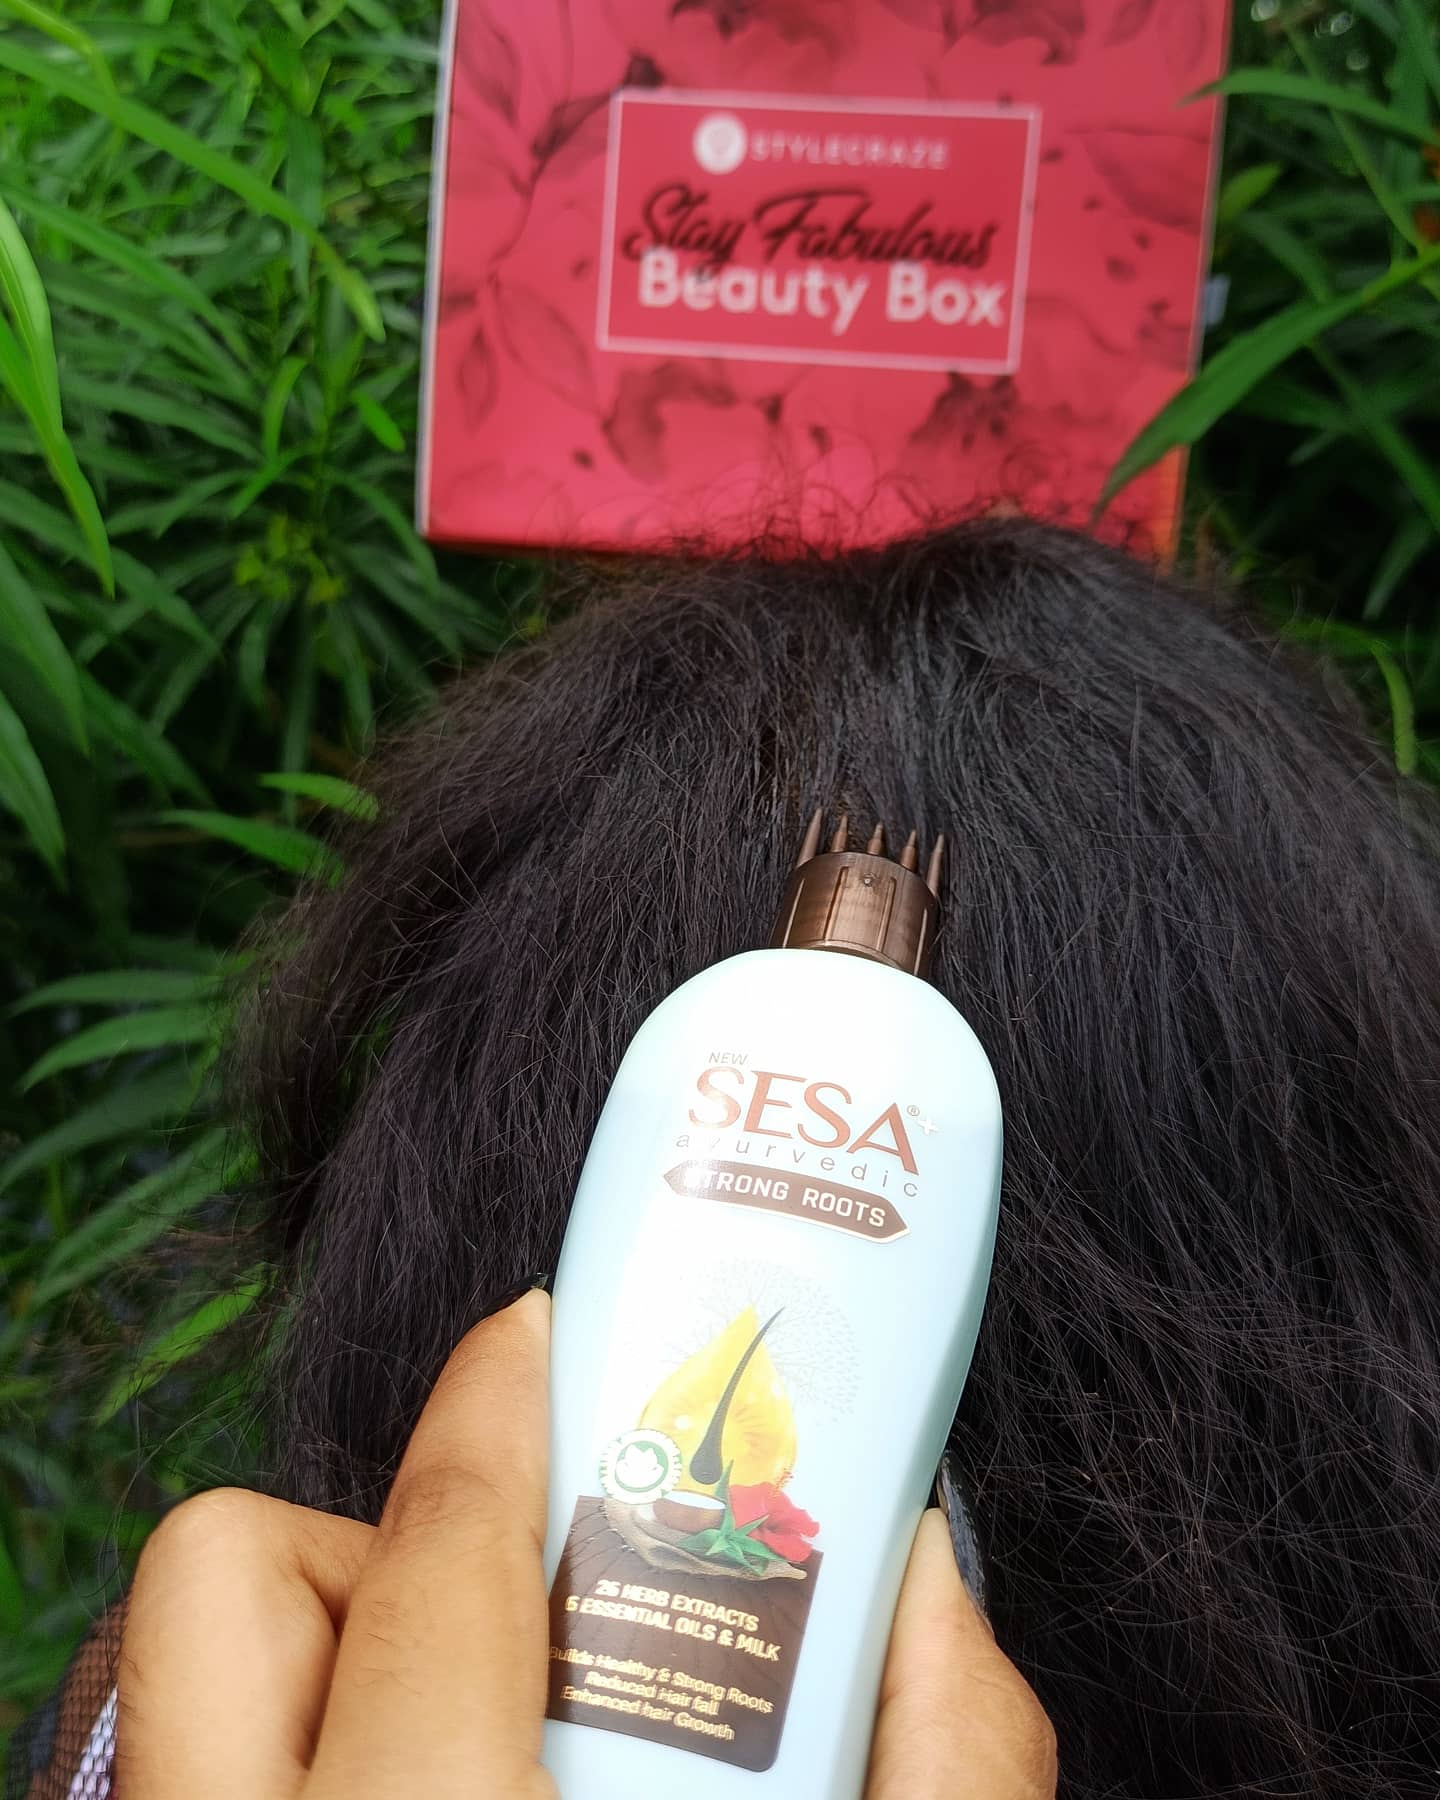 Sesa+ Strong Roots-Love this Hairoil-By bhavya_ramesh